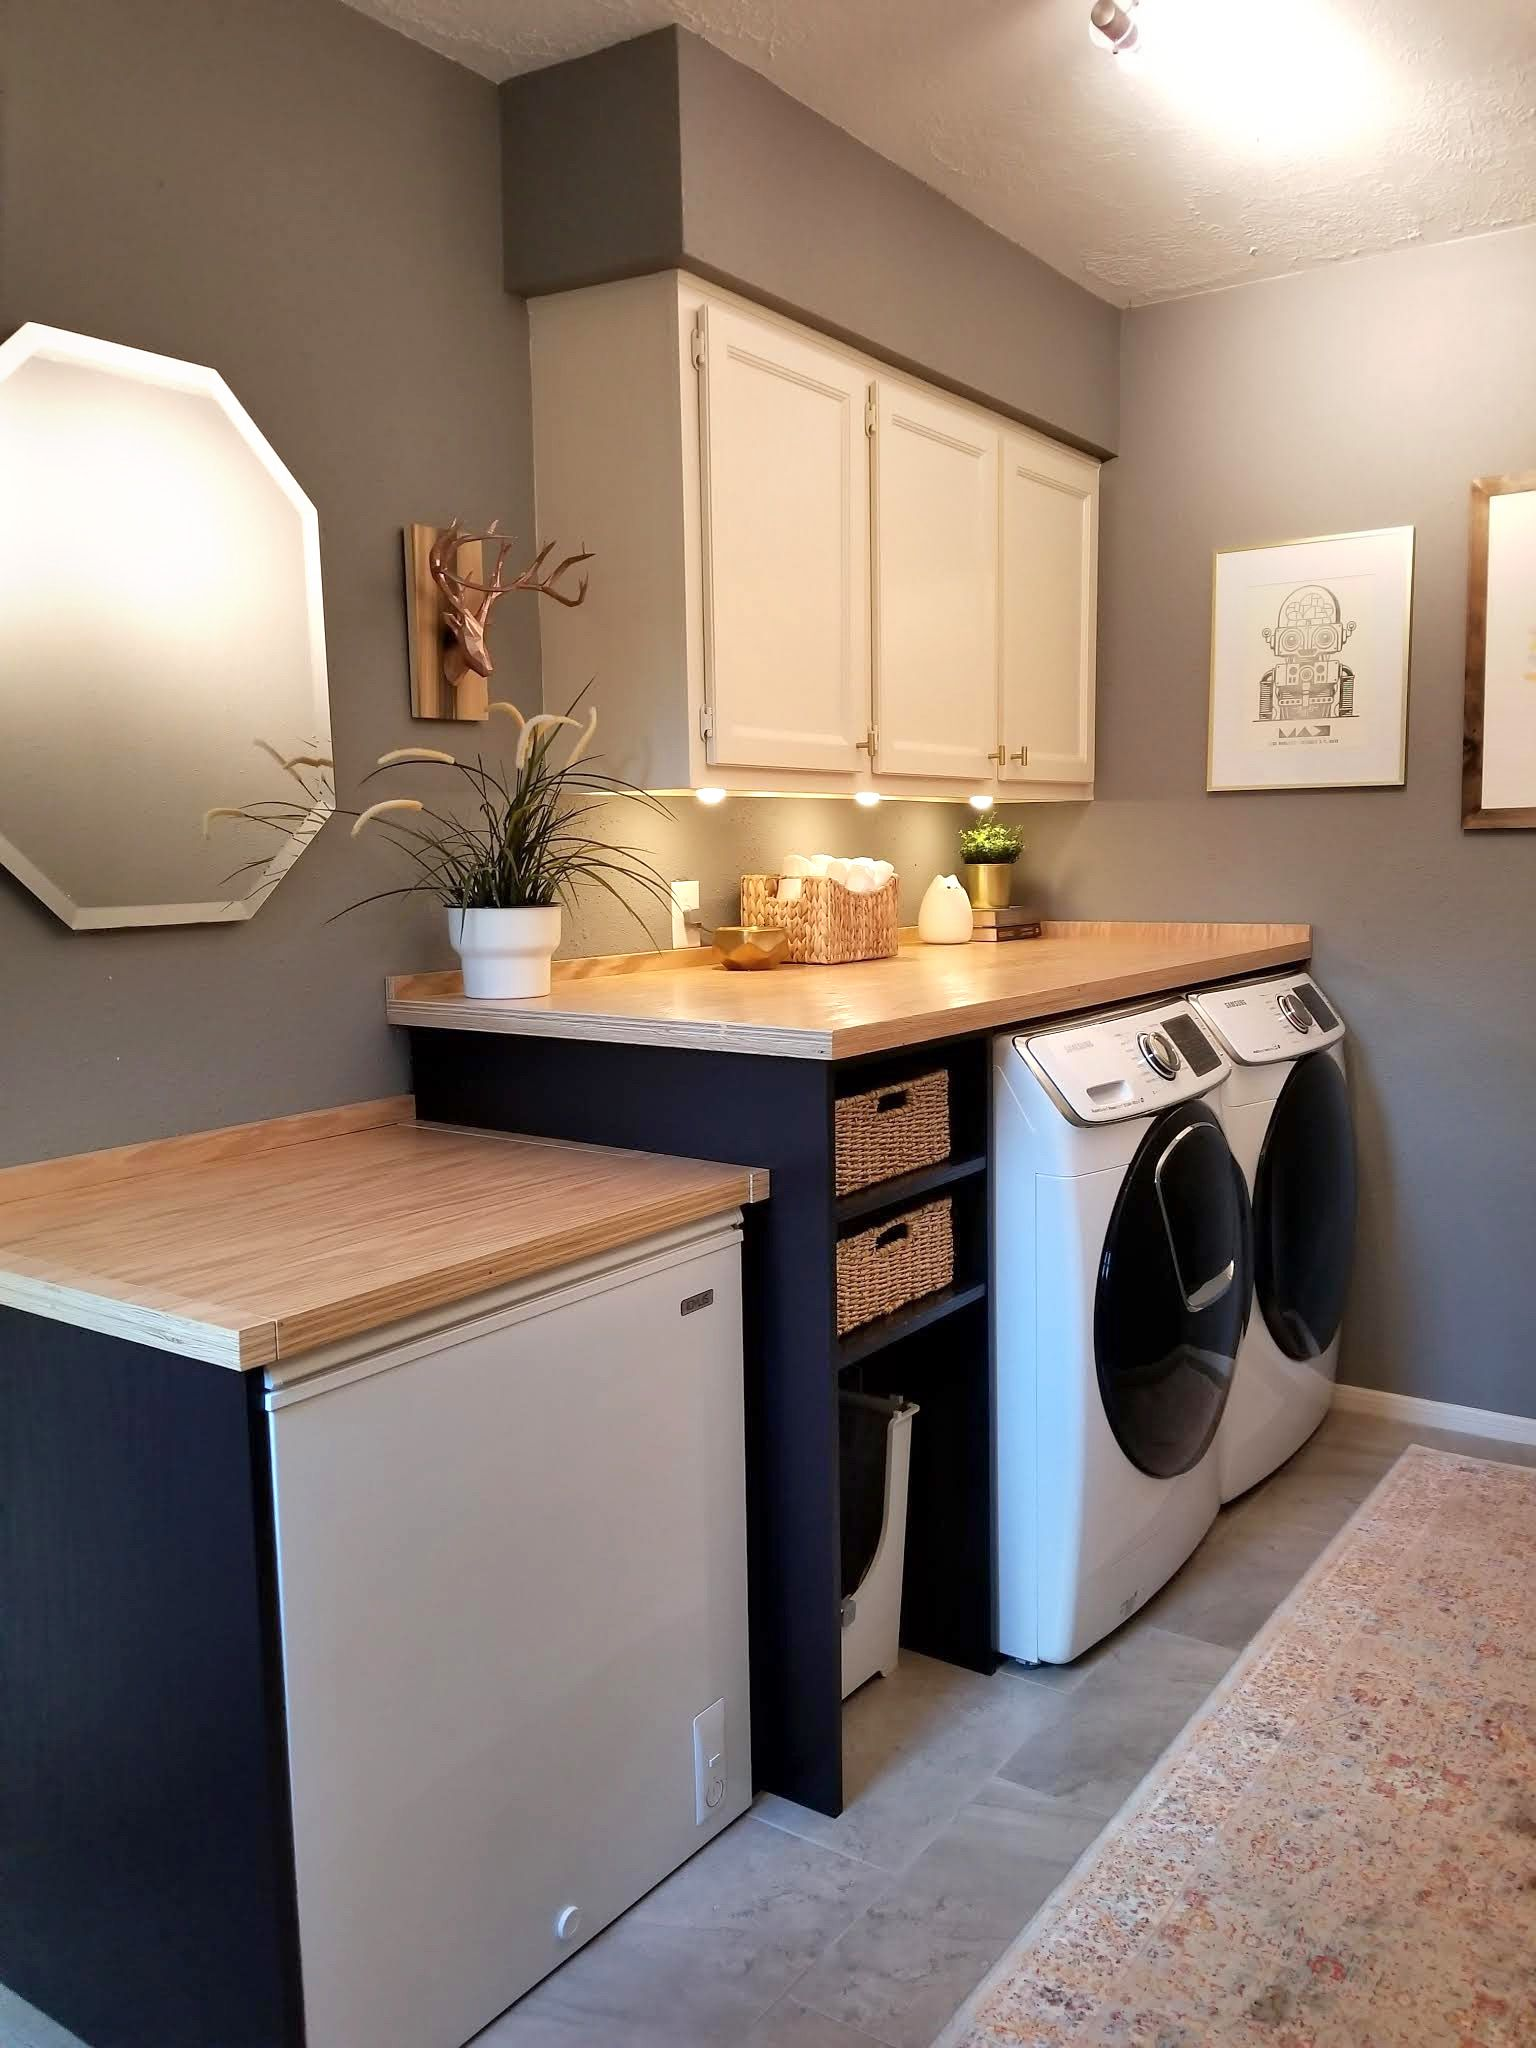 We Made Wood Countertops Laundry Room Diy Laundry Room Remodel